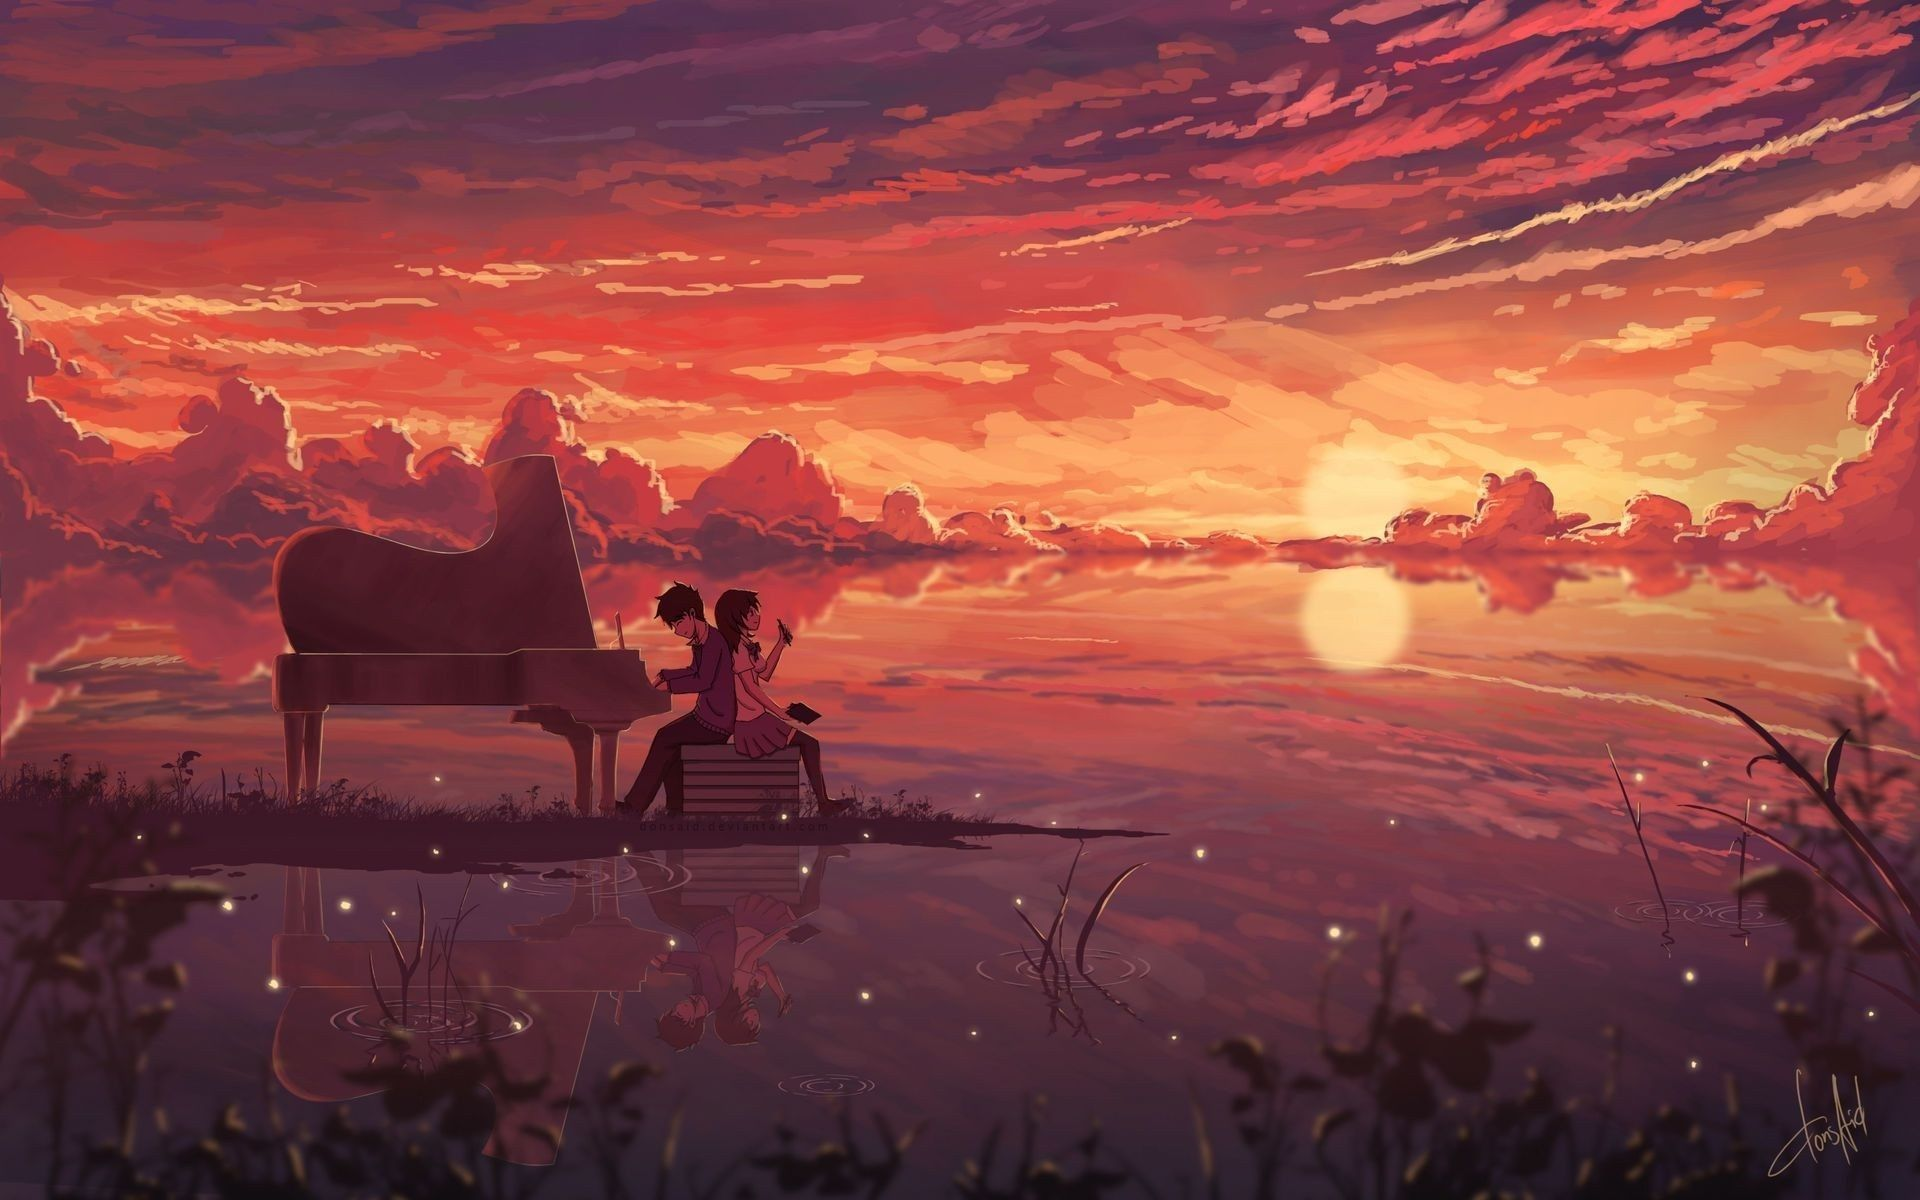 1920x1200 Anime Wallpaper Download Free For Pc Hd Anime Scenery Anime Wallpaper Art Wallpaper